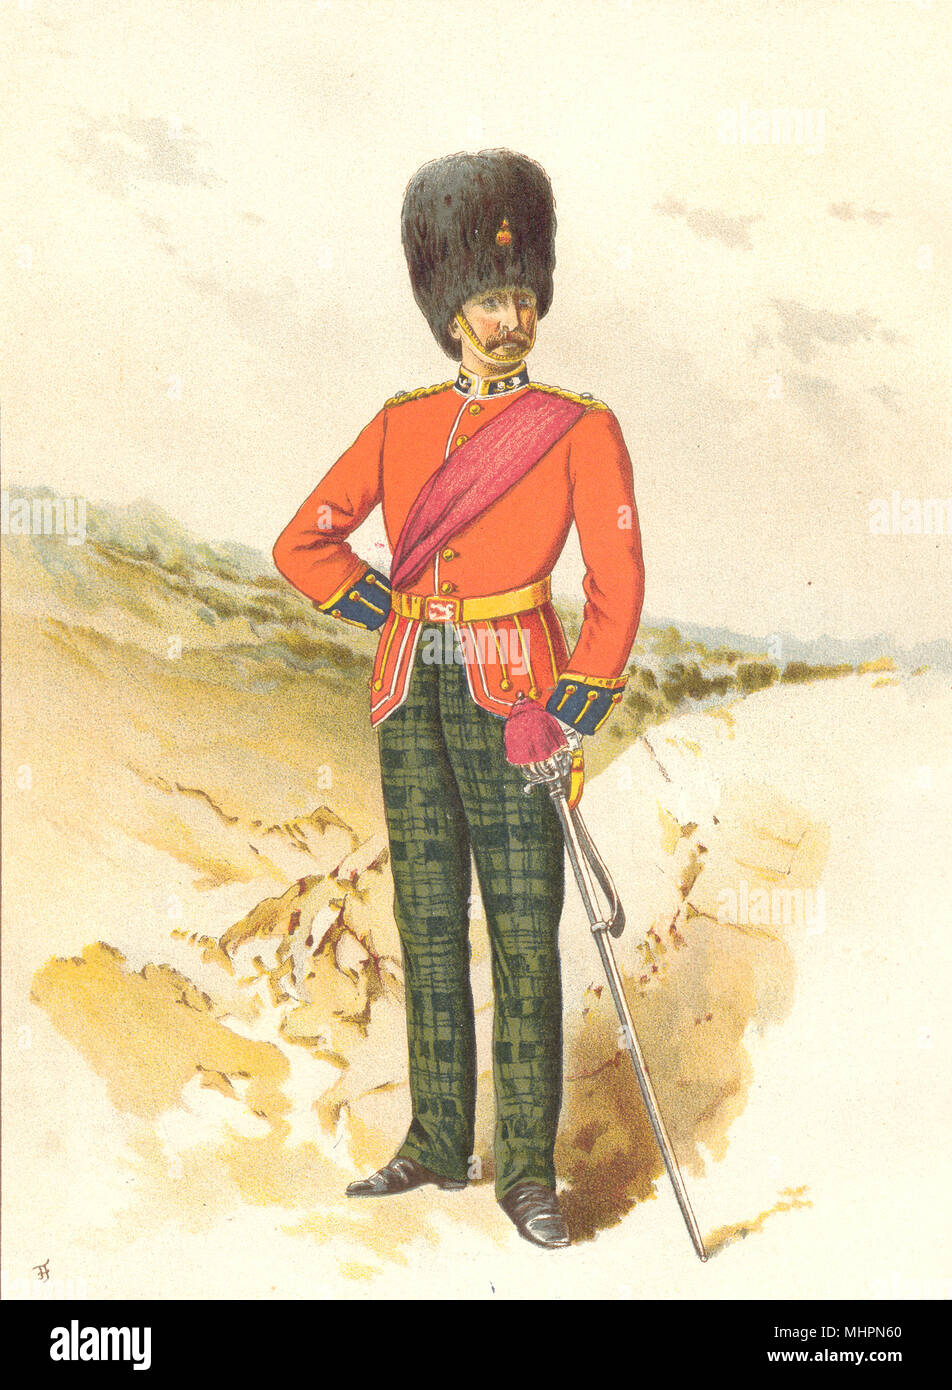 BRITISH ARMY UNIFORMS. The 21st – Royal Scots Fusiliers Regiment 1890 print - Stock Image